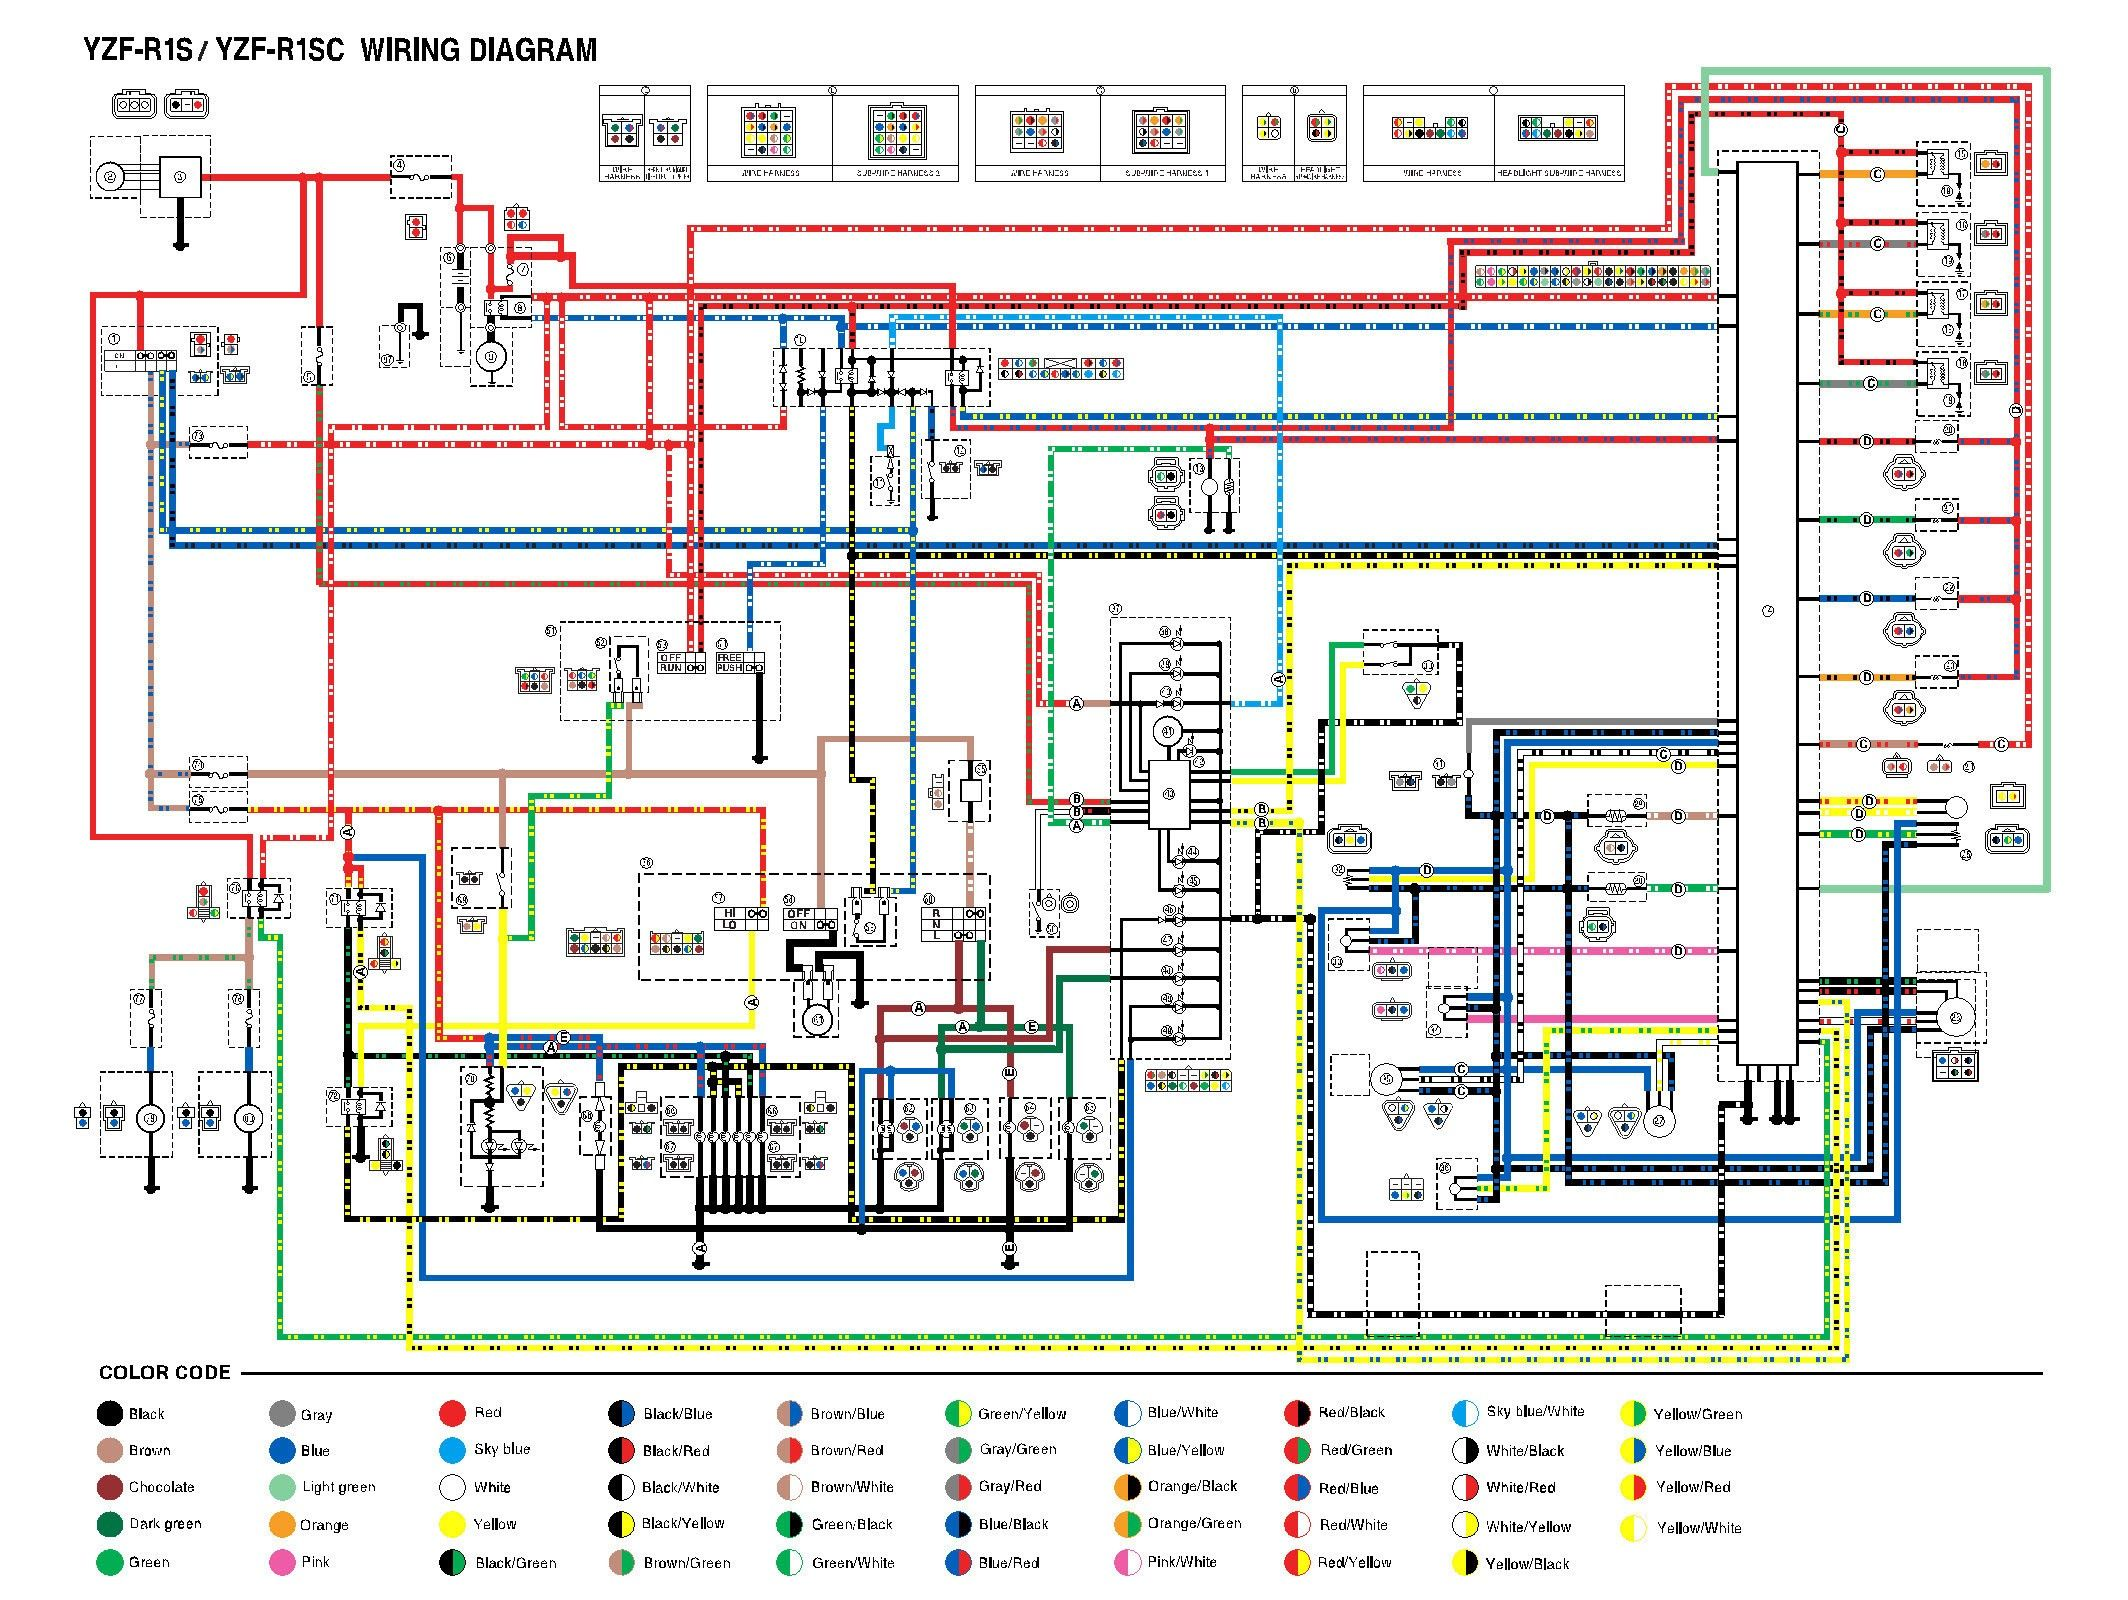 Unique Wiring Schematic Legend Diagram Wiringdiagram Diagramming Diagramm Visuals Visualisation Graphical Diagram Diagram Chart House Wiring